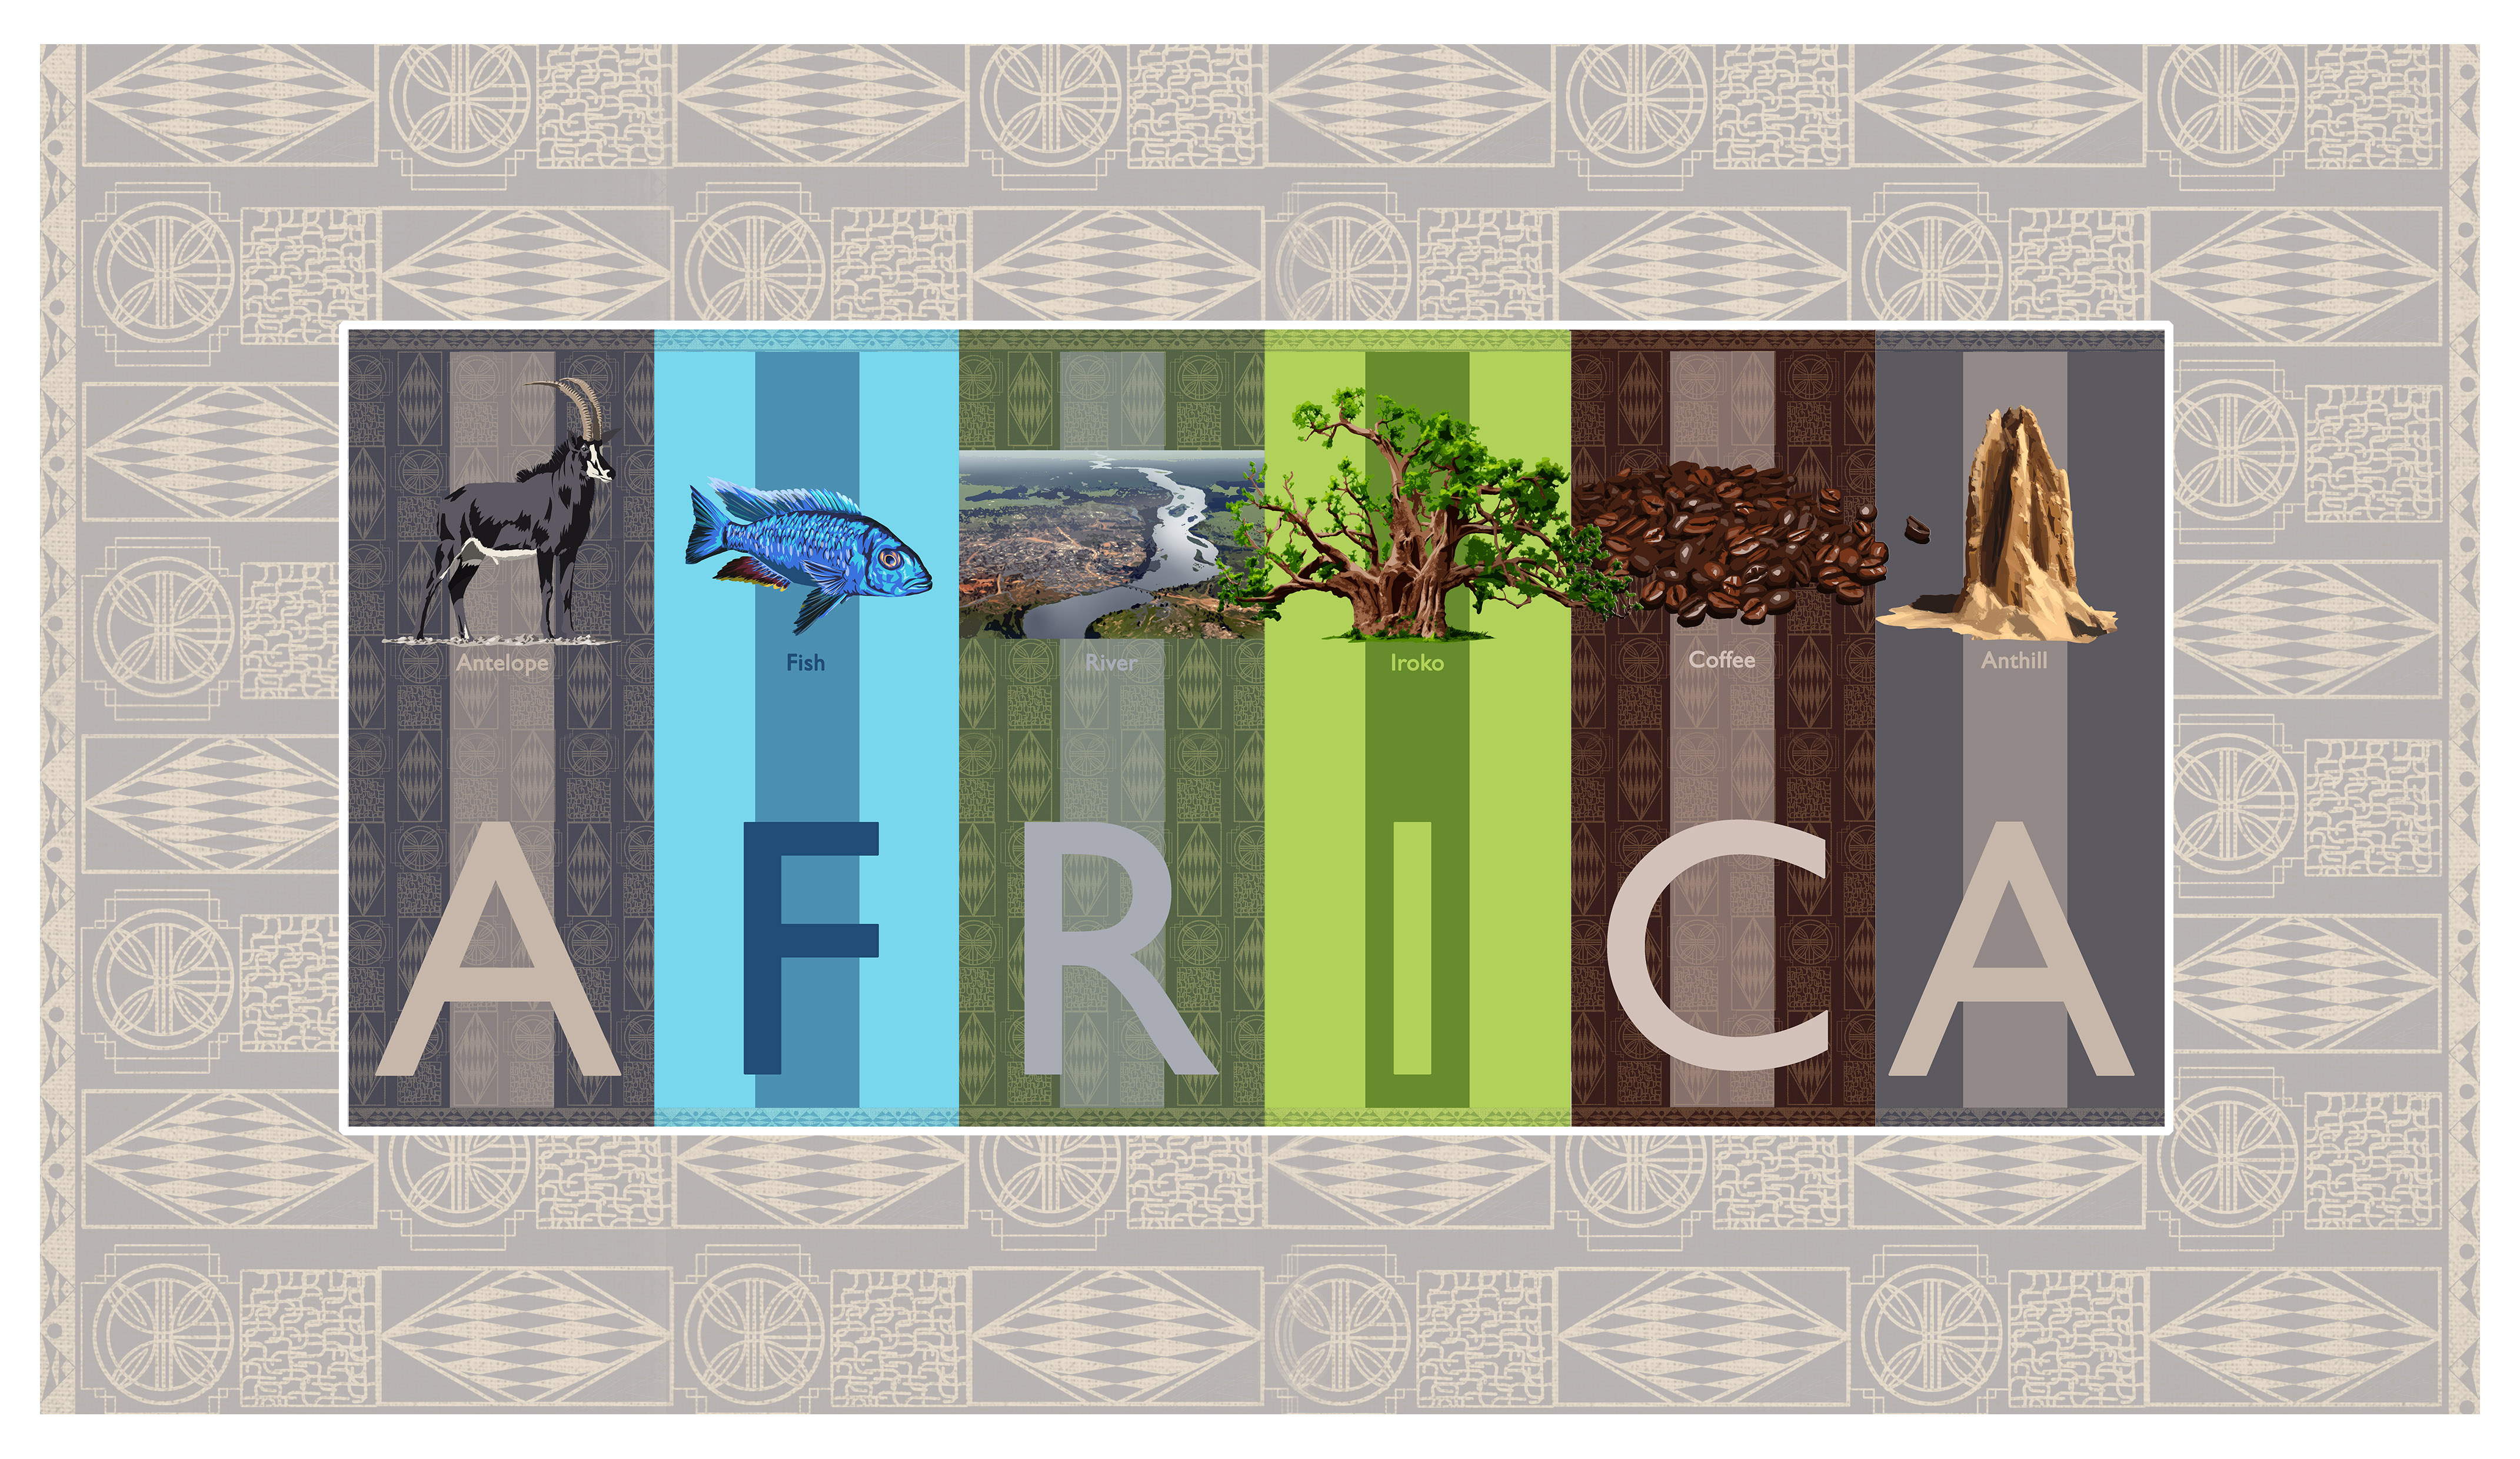 Africa ABC children's picture book